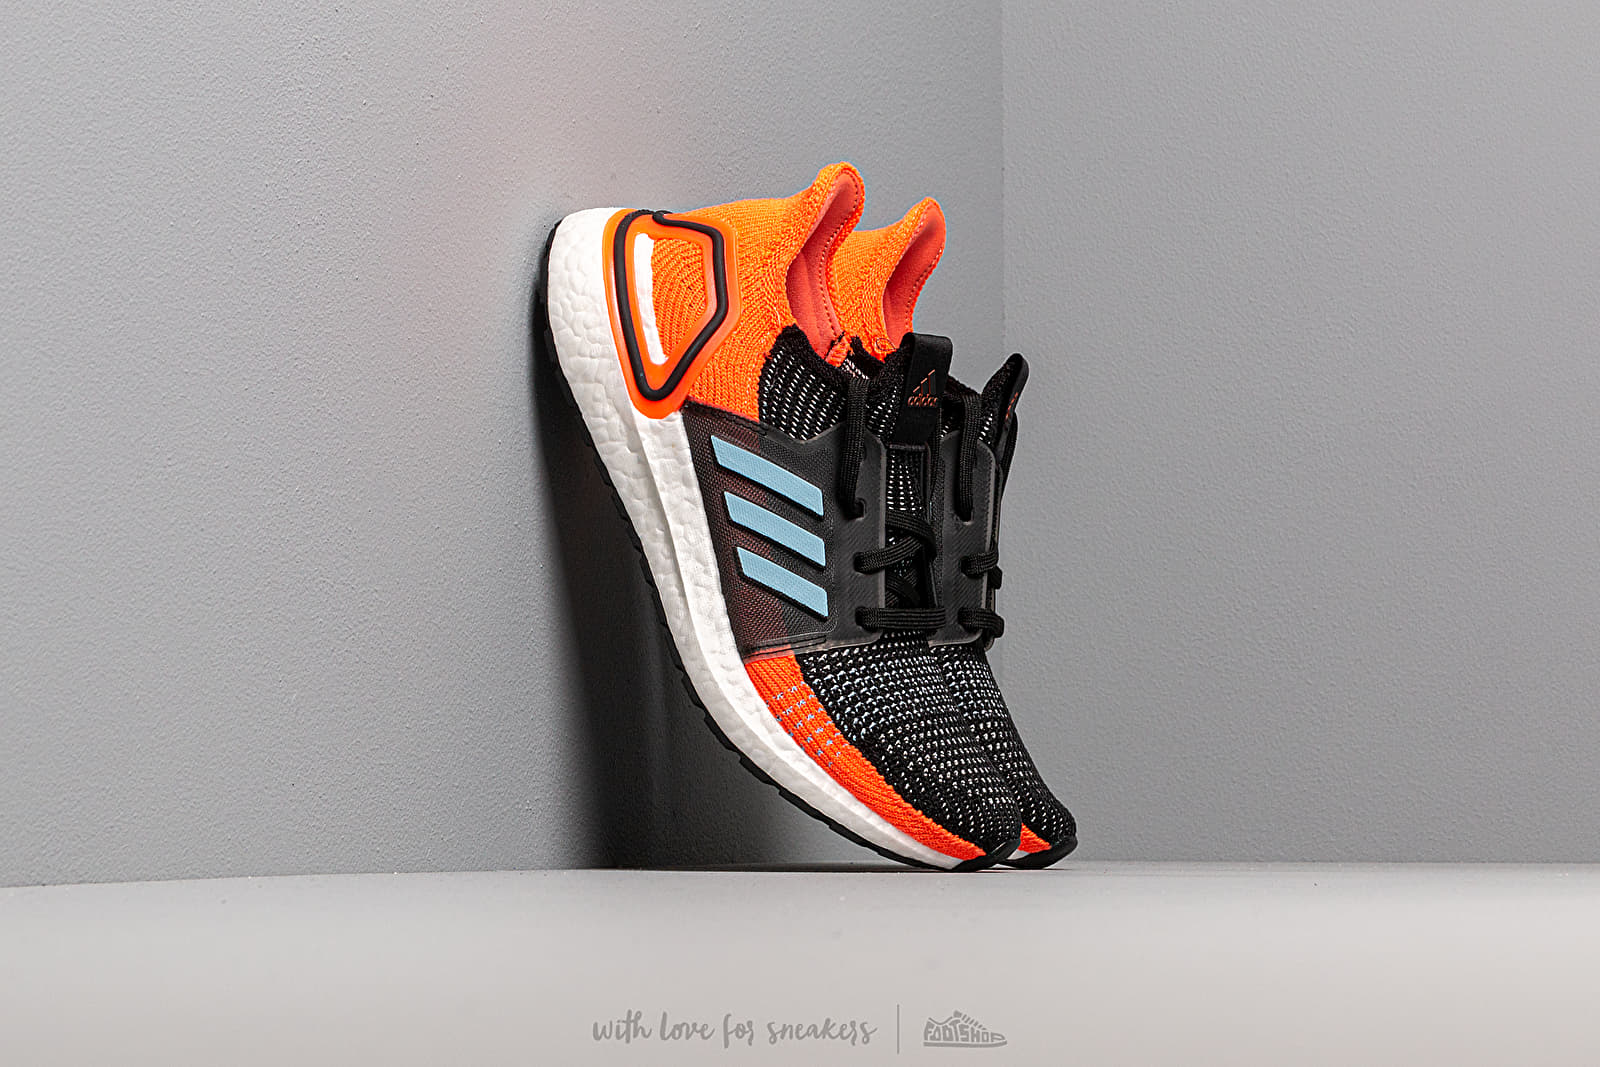 premium selection 8bf0e 7fc4a adidas UltraBOOST 19 W Core Black/ Glow Blue/ Hi-Res Coral